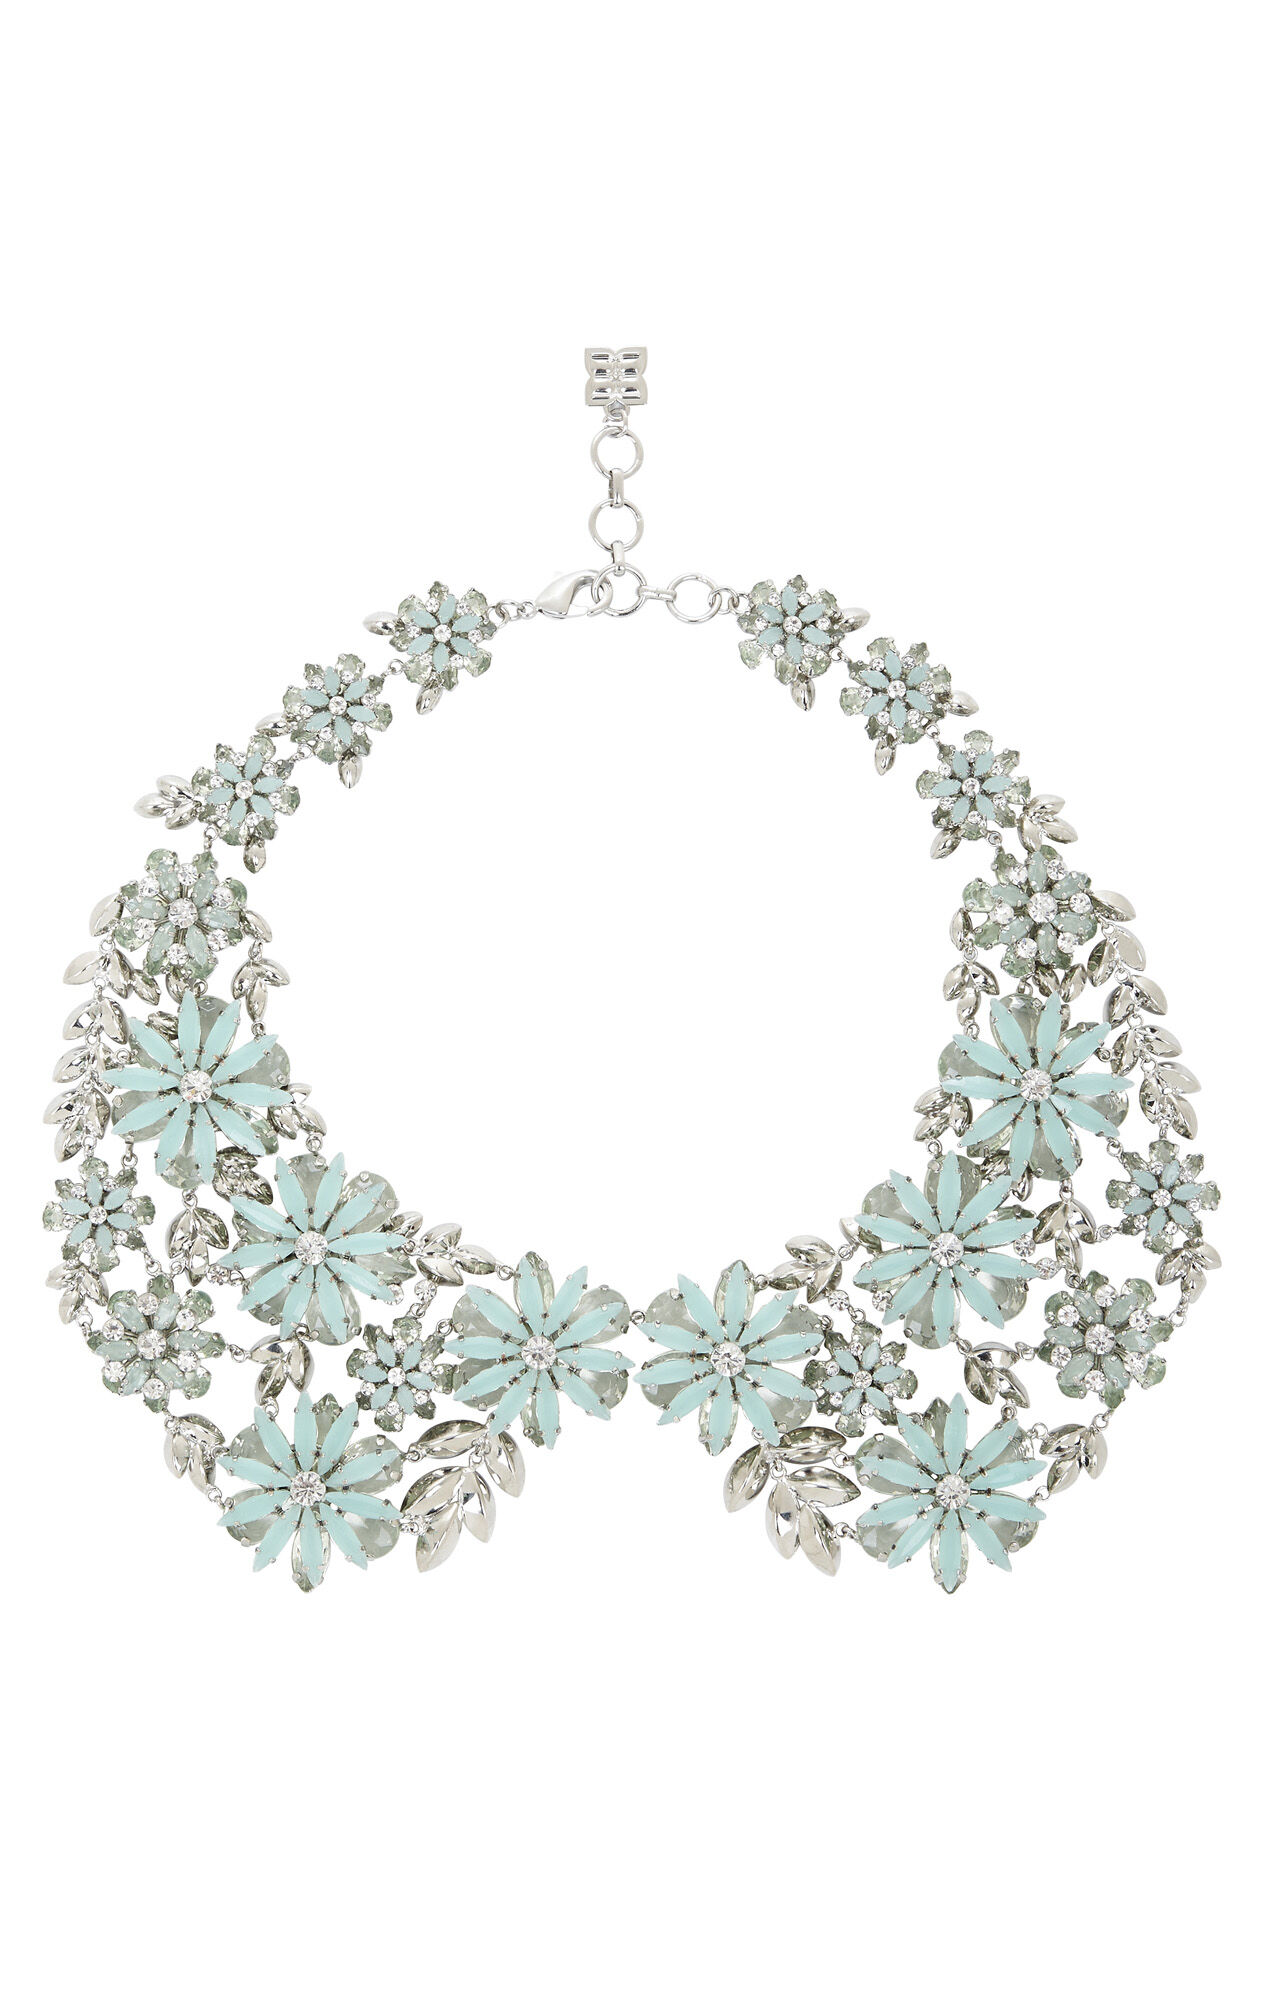 Floral Peter Pan Collar Necklace